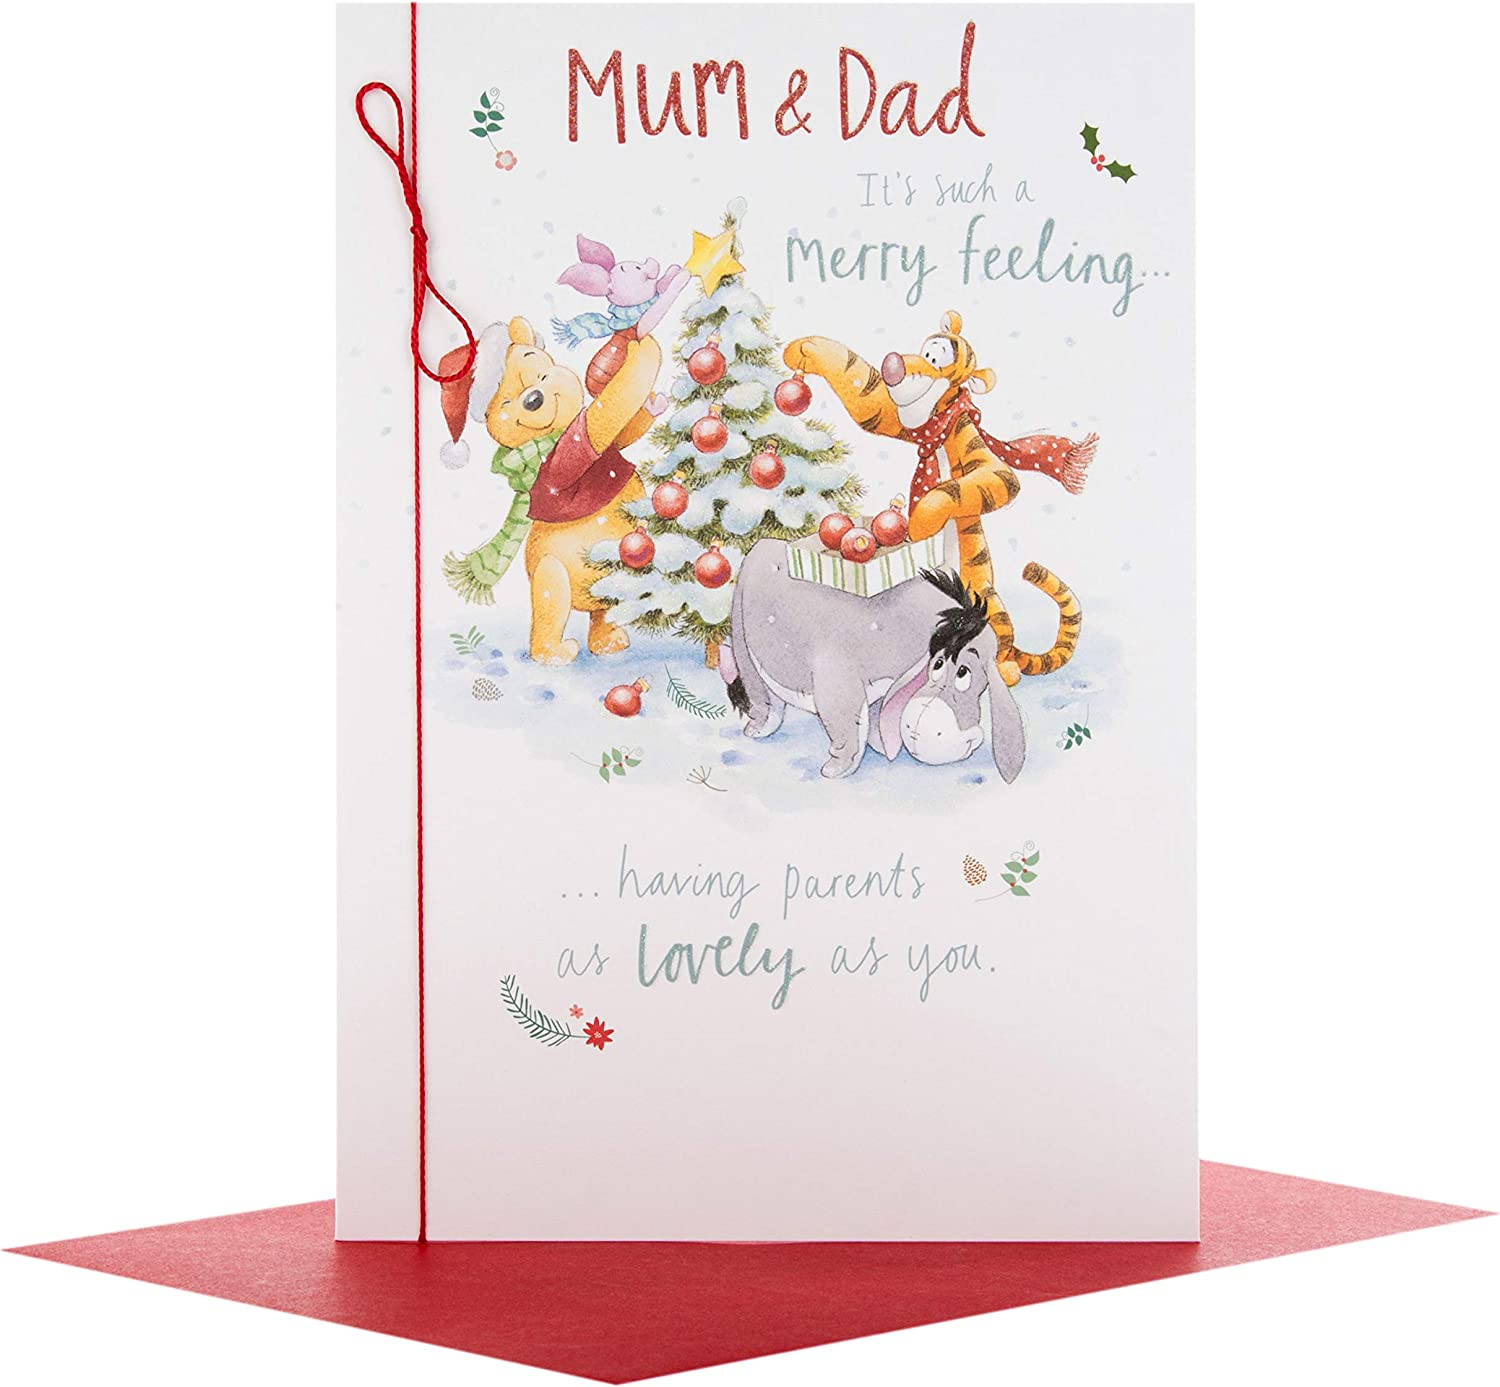 Christmas Cards Merry Christmas Mum Great selection of Cards Must Have